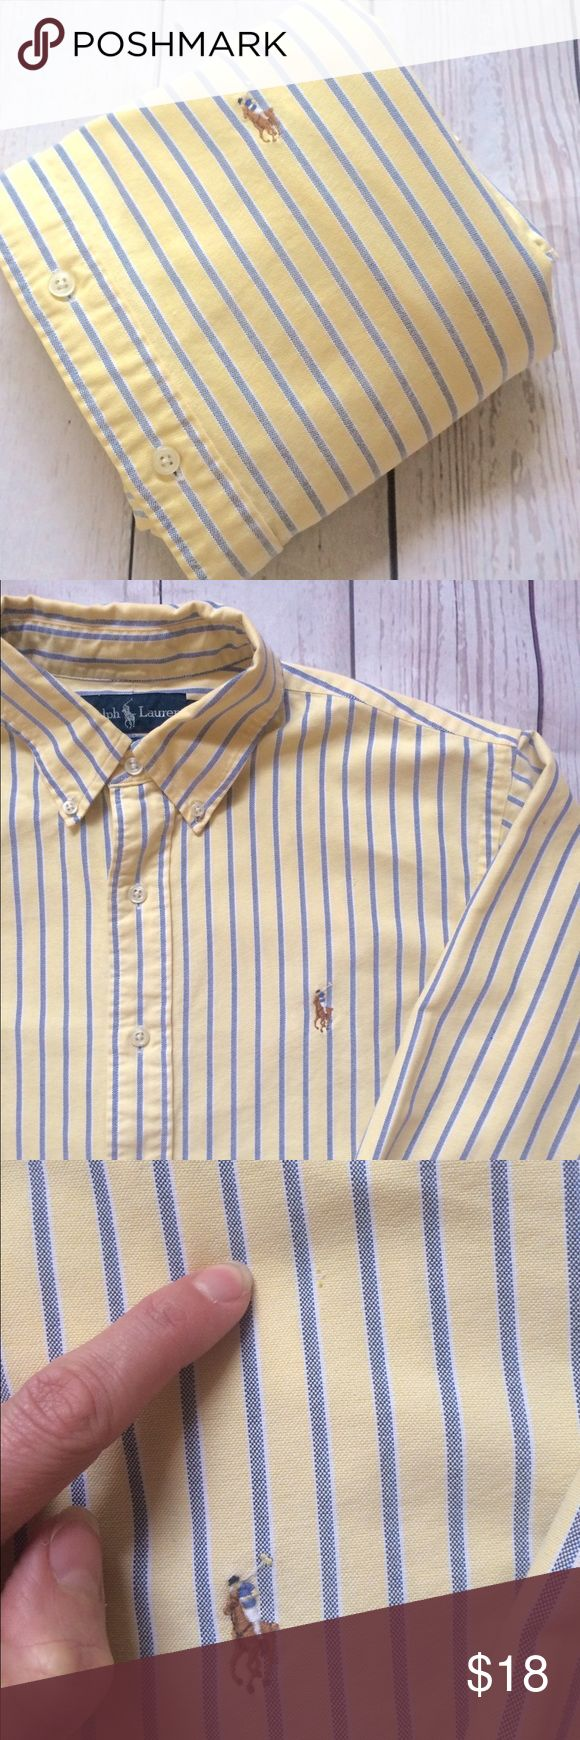 """🎈SALE🎈1/$18•2/$30•Polo•Ralph•Lauren•S•Shirt• SALE👔1/$18•2/$30•3/$45•4/$61•Choose any available Polo Ralph Lauren button front Oxford shirts that say SALE in the title🎈NO OFFERS WILL BE ACCEPTED OR FURTHER REDUCTIONS TAKEN 🎈men's  long sleeve button front 100% cotton oxford shirt. Size L CLASSIC FIT per tag•RUNNING SMALL•Signature pony at chest•no fraying• small thin spot on front, as pictured• Chest: 24"""" Length: 28"""" Sleeve: 33"""" Shoulder: 18"""" Polo by Ralph Lauren Shirts Dress Shirts"""